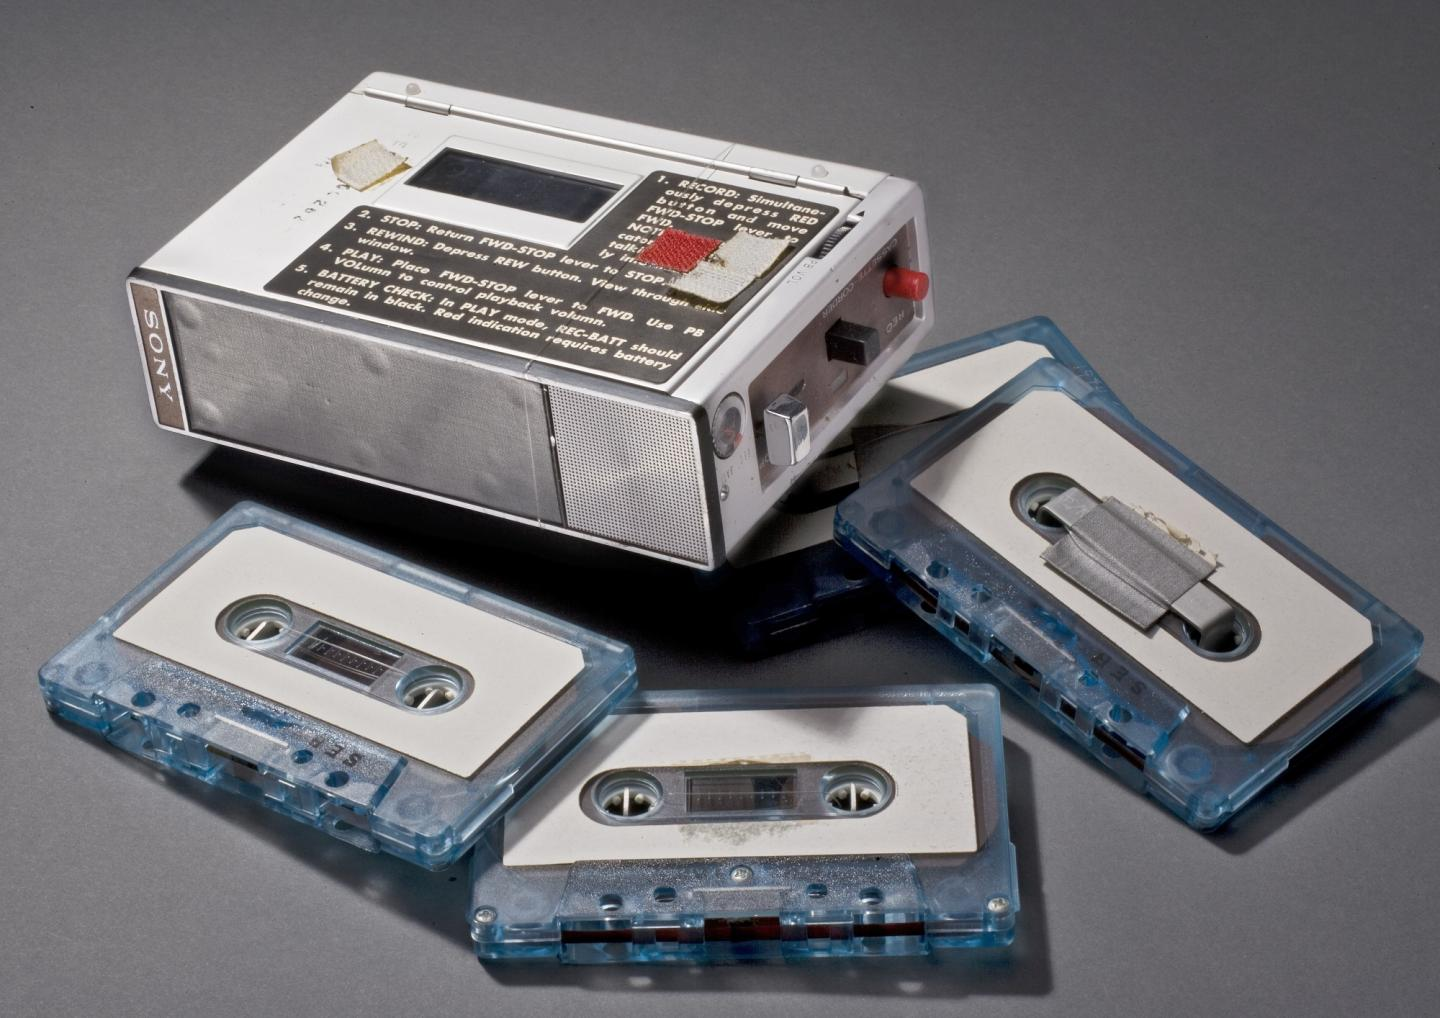 voice recorder and tapes